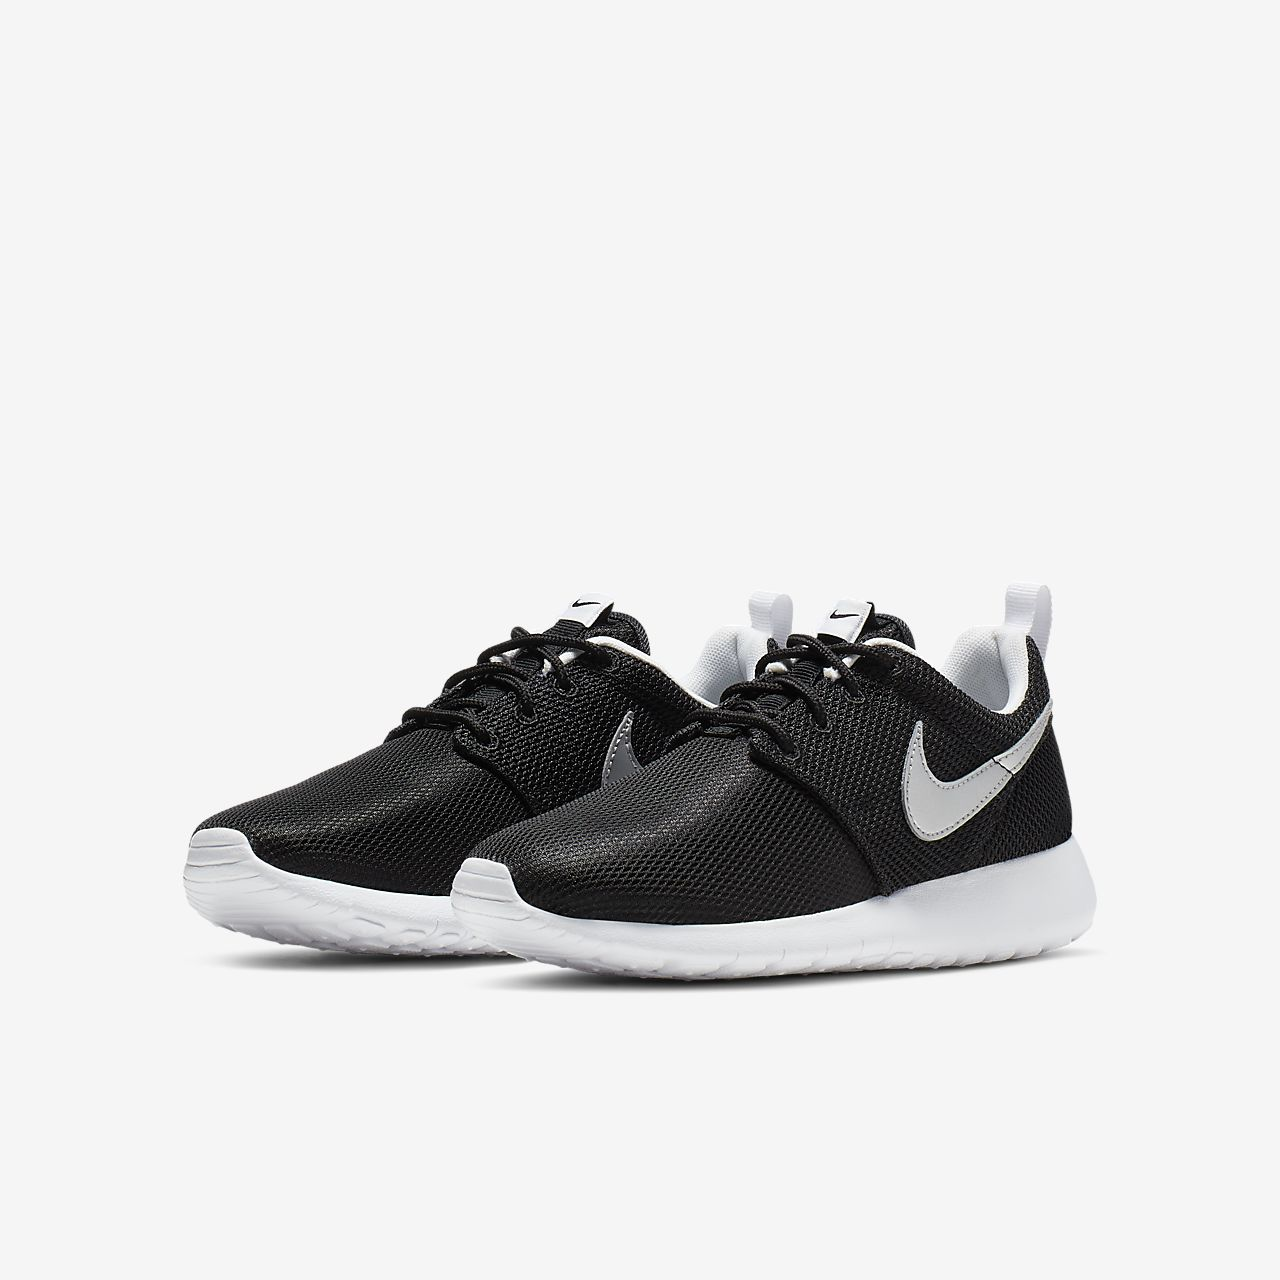 Fall/Winter Nike Roshe Run 599728-021 Black / Metallic Silver-White-White   Nike   (Kids)   2016